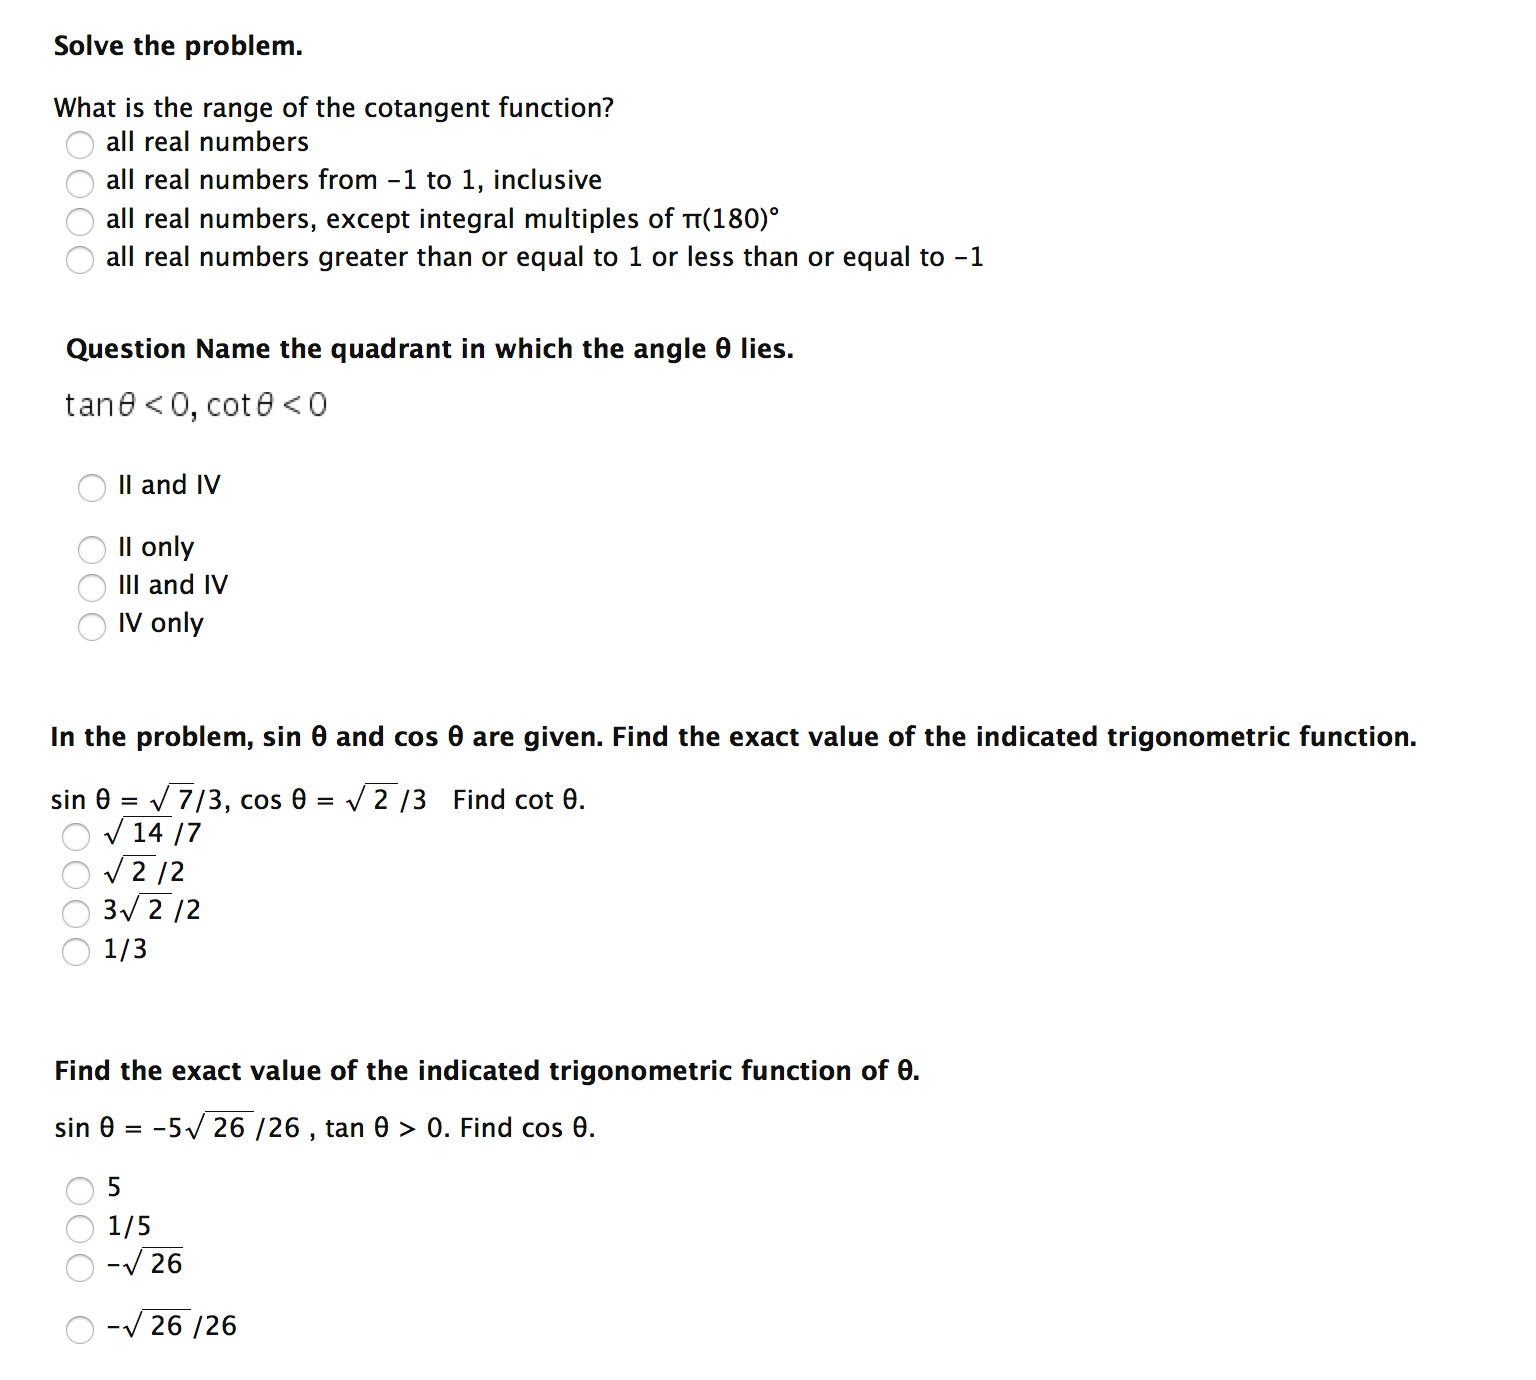 worksheet Quadrant Numbers solve the problem what is range of cotang chegg com image for cotangent function all